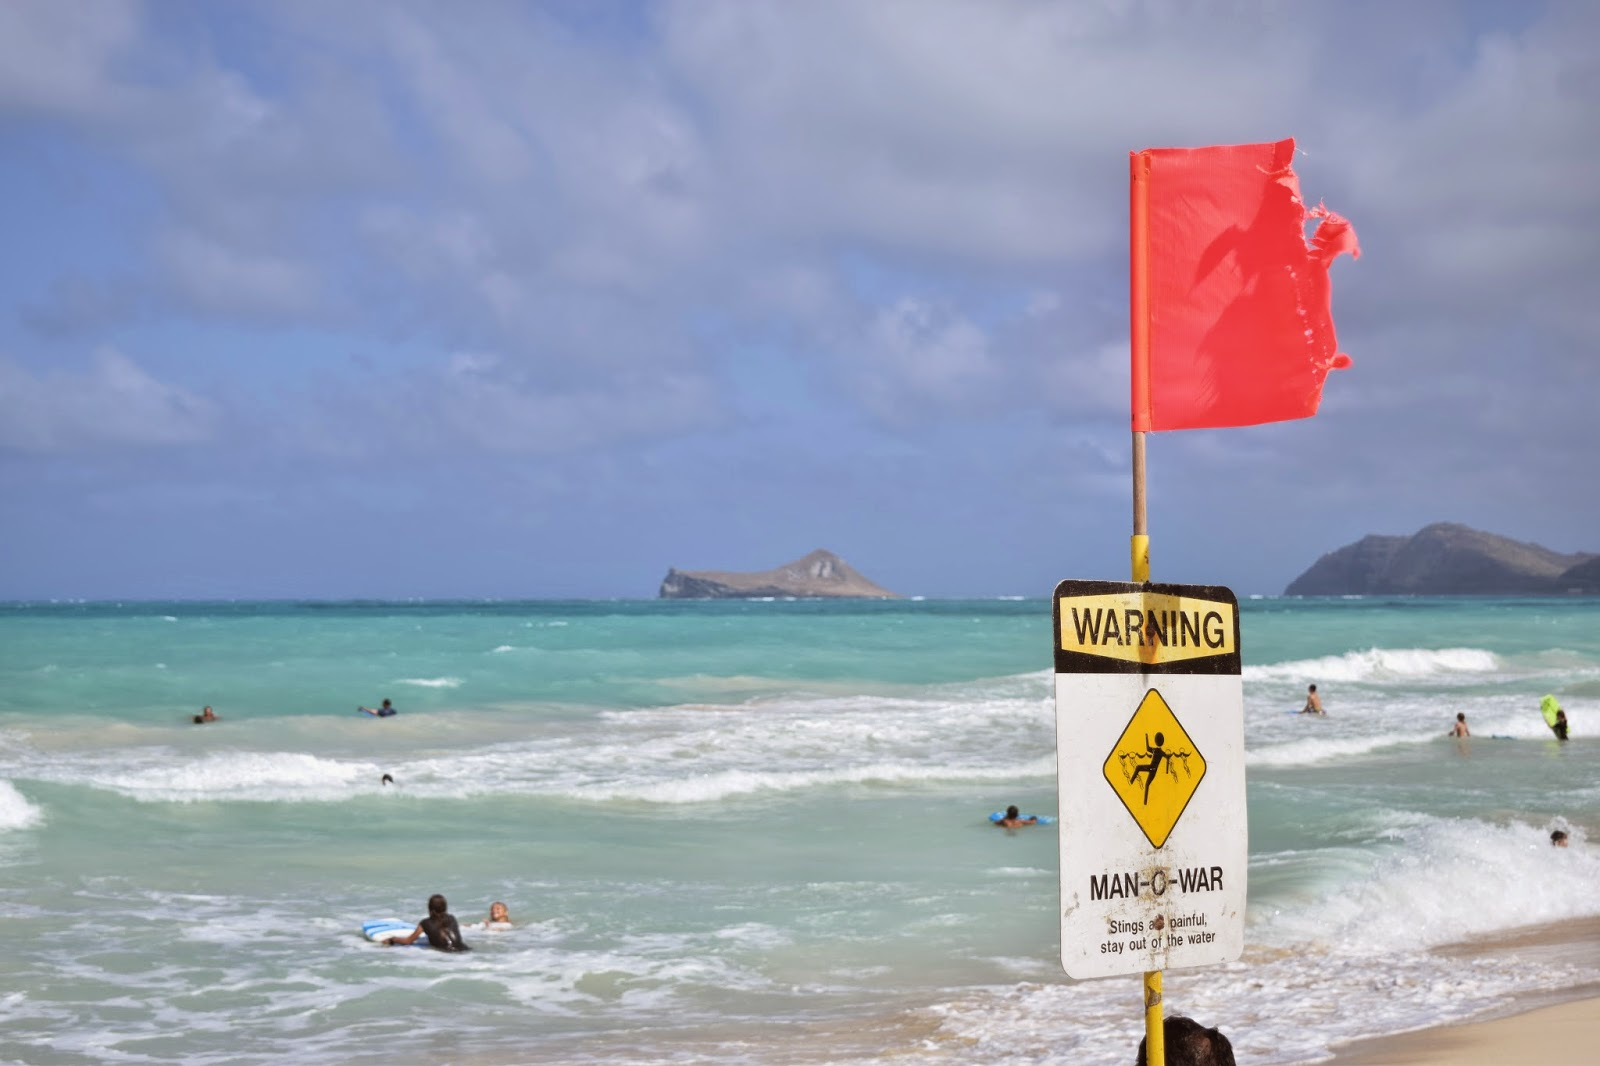 Bellows Beach, Oahu